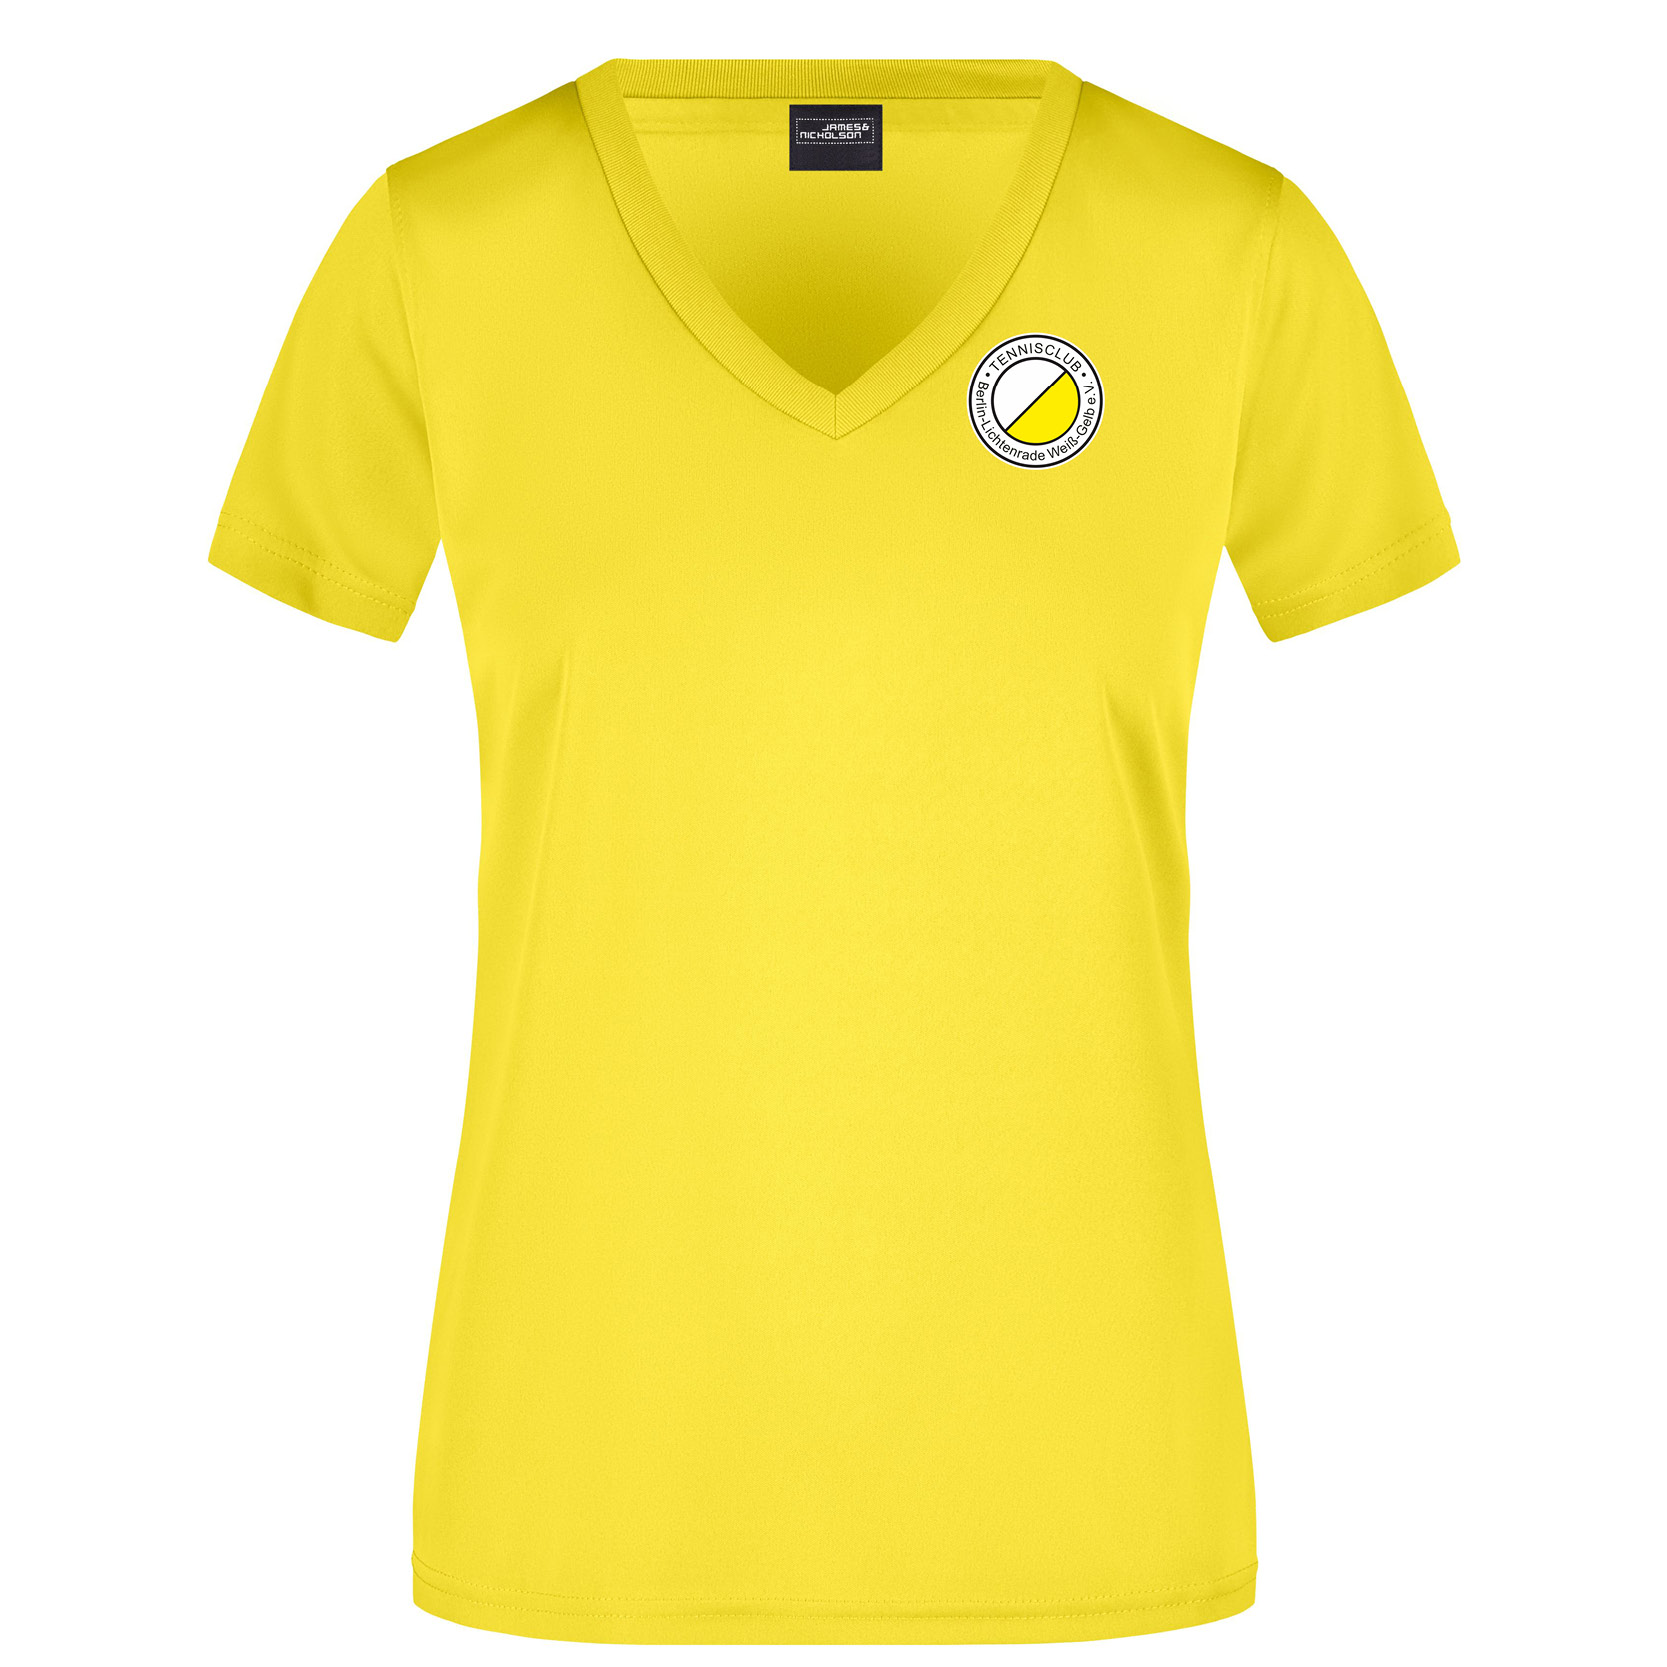 Team-T-Shirts individuell bedrucken